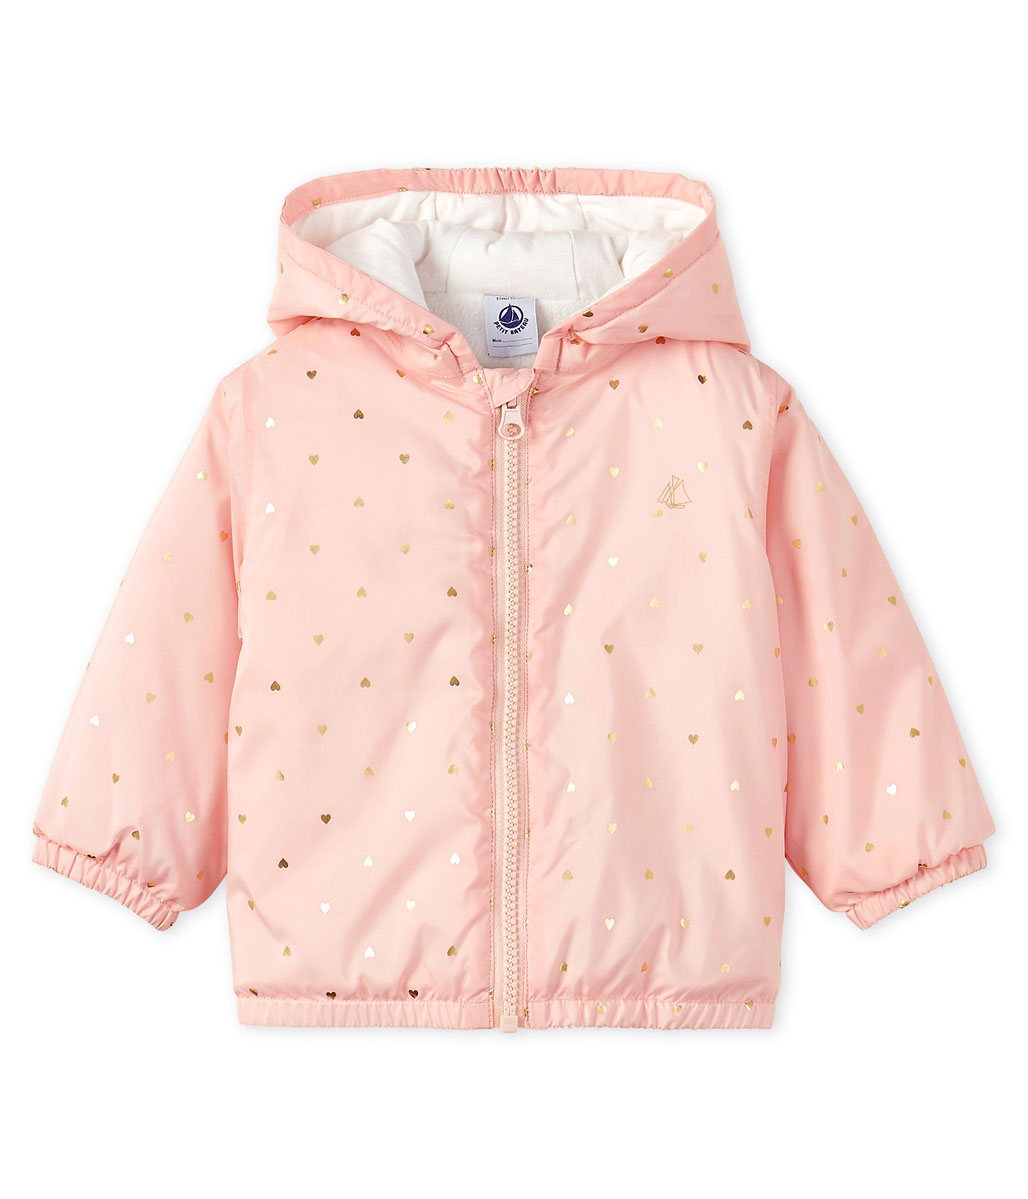 Unisex Baby's Fleece-Lined Jacket